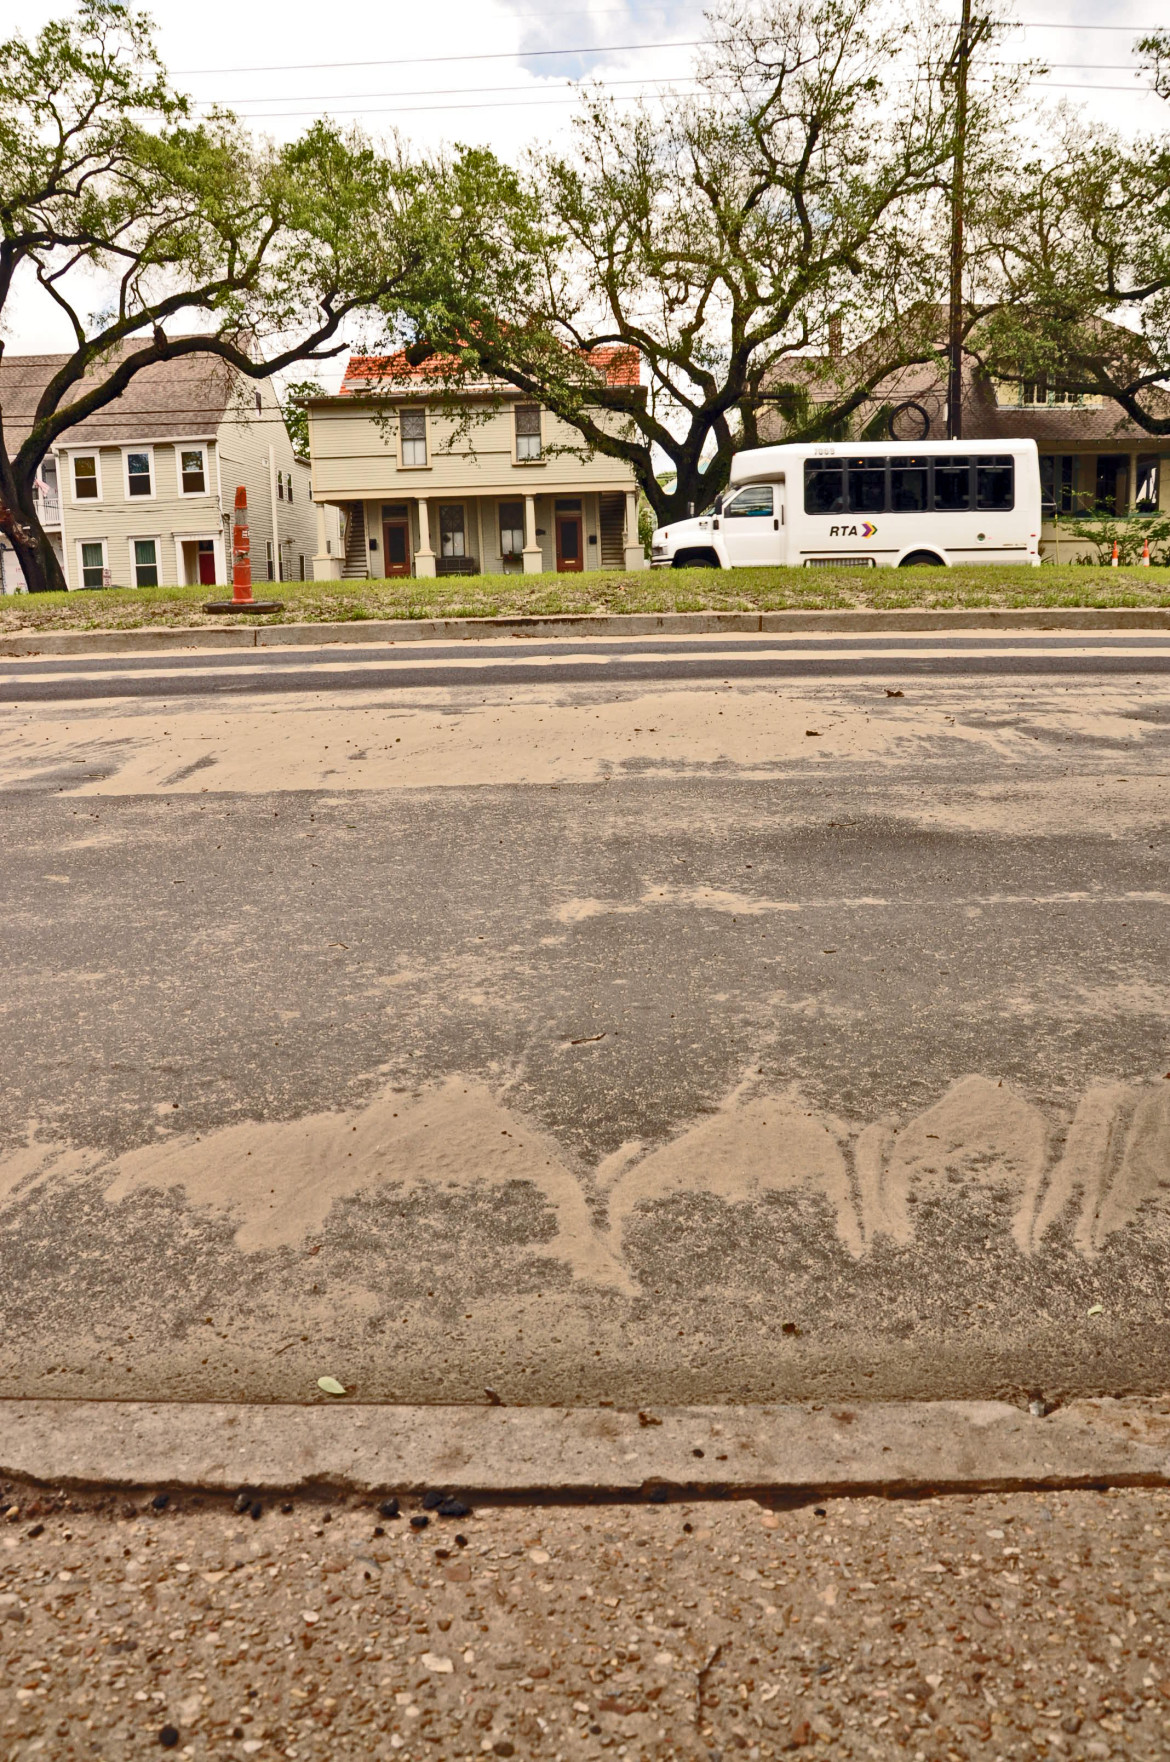 The top of the neutral ground being rebuilt on Napoleon Avenue by the Army Corps of Engineers rises far above the sidewalk side of the street in part because it is designed with a crown - meaning the center is higher than the sides. Opponents of the plan wanted the neutral ground to be flat or concave to reduce storm runoff going into the street.